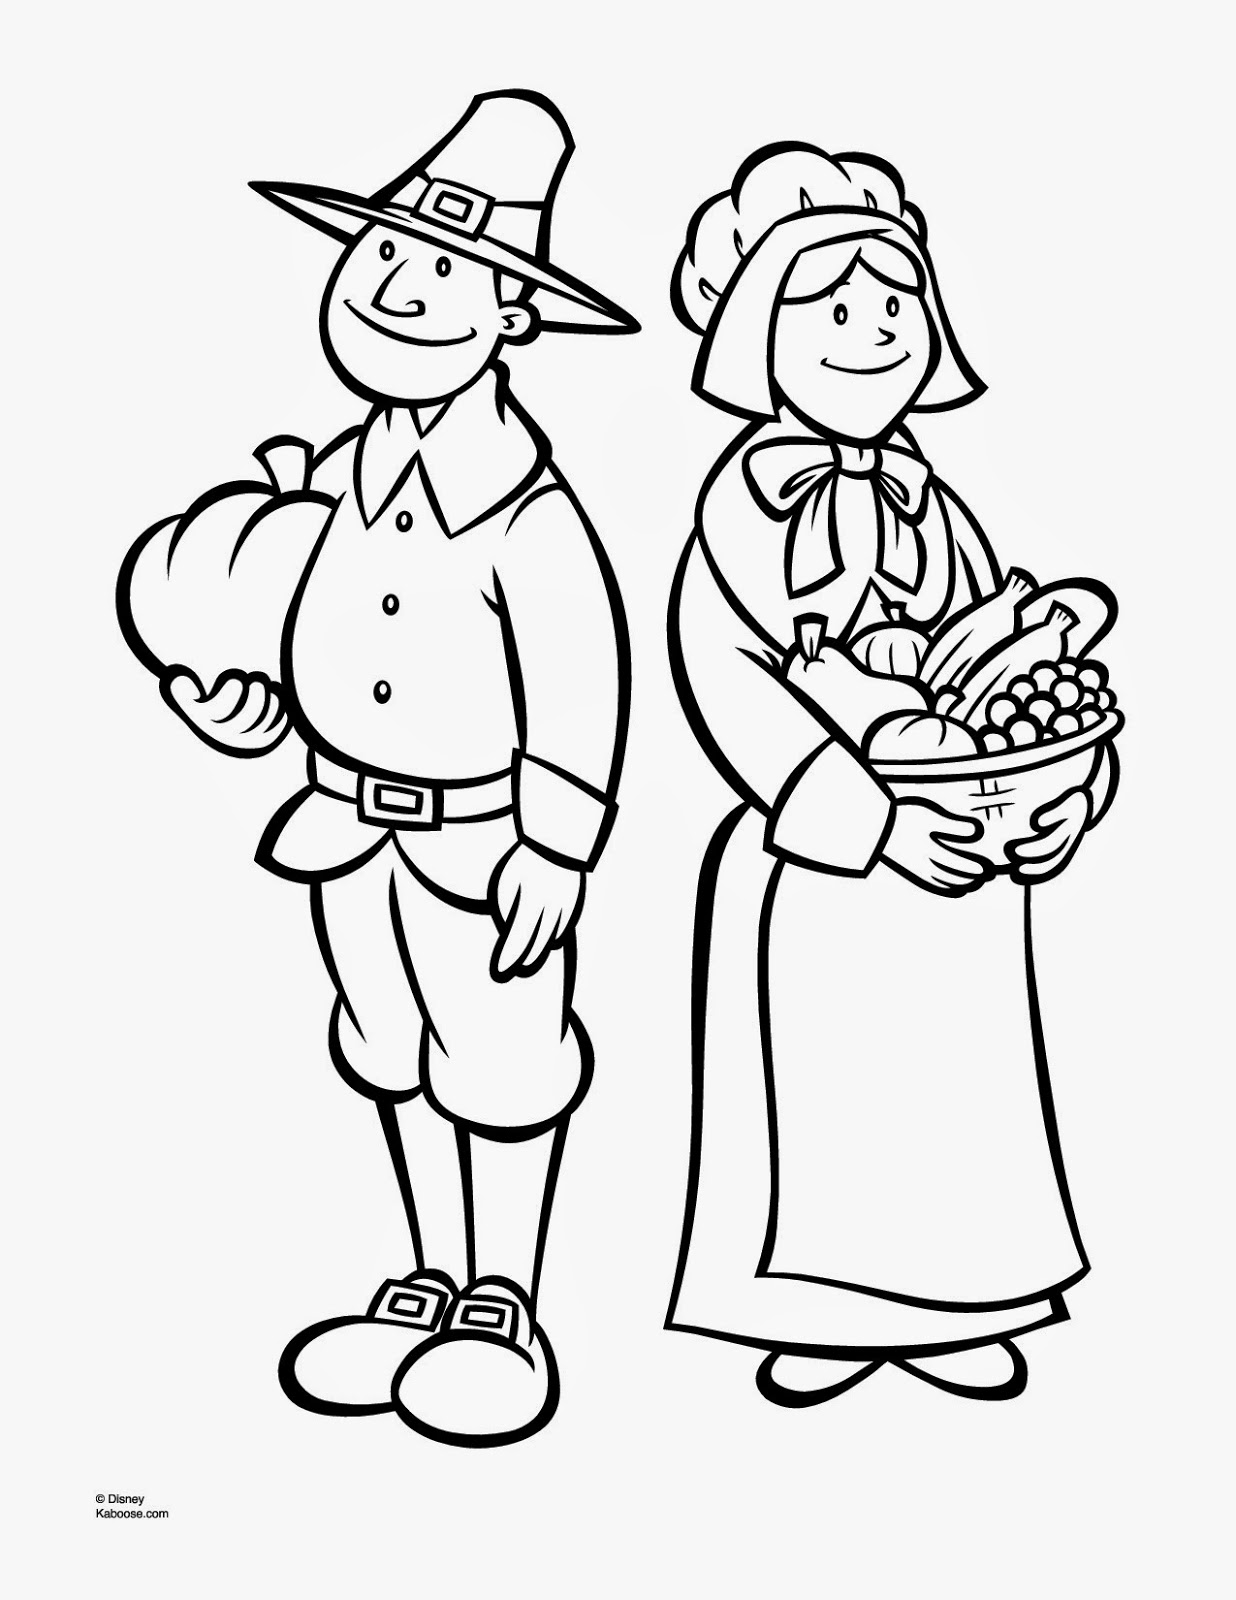 thanksgiving day coloring pages thanksgiving day printable coloring pages minnesota miranda coloring pages thanksgiving day